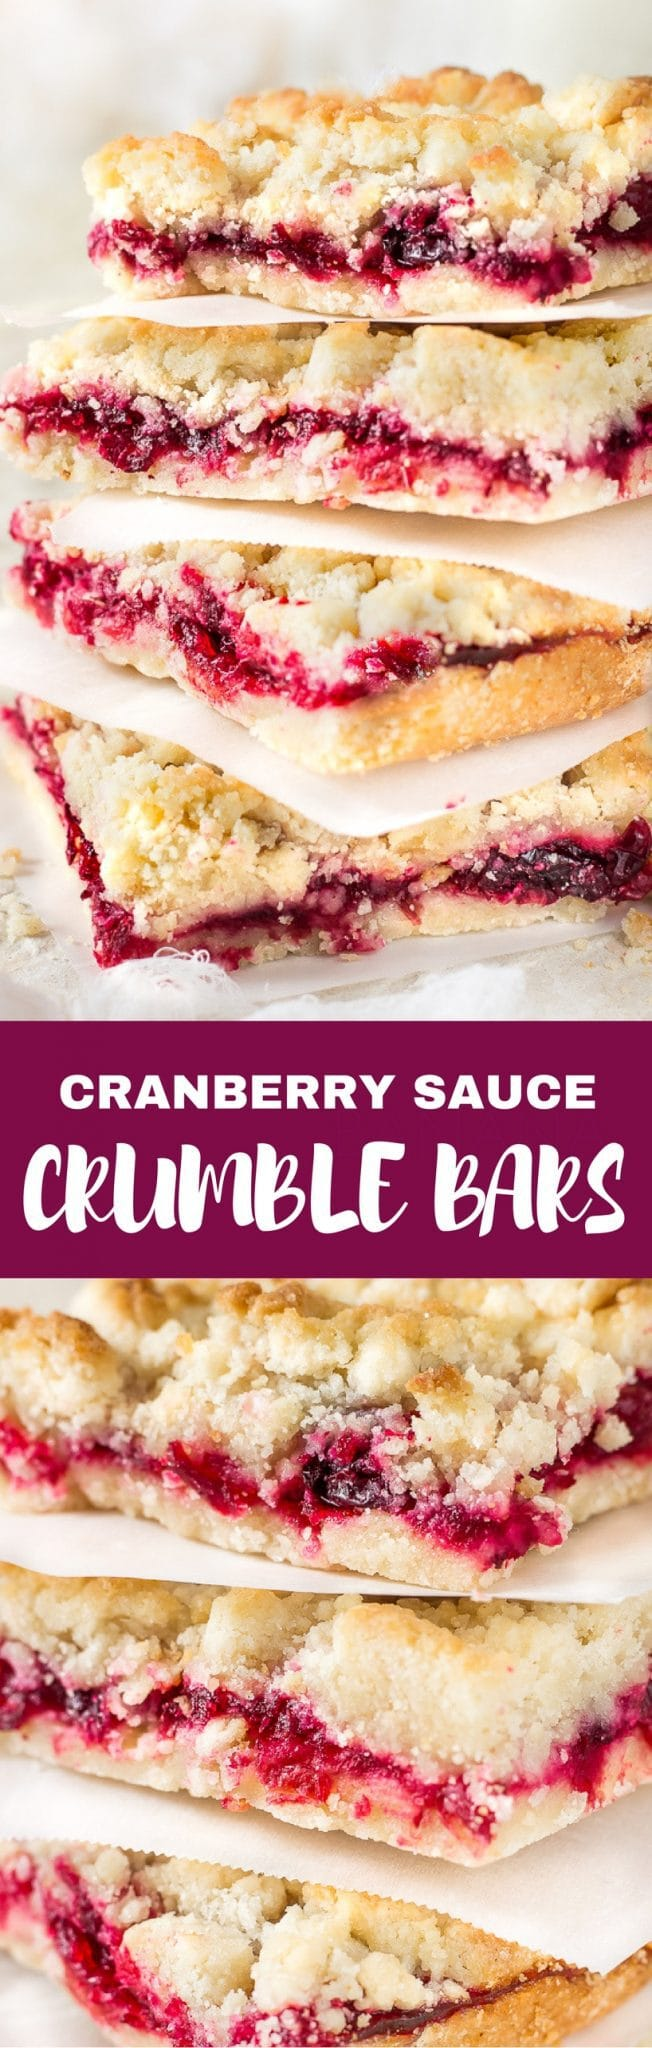 Luscious, buttery, sweet and tart glossy cranberry sauce crumble bars are made with a sweet crumble dough that doubles as a topping. A classic and super easy holiday dessert that's gorgeous and so delicious! You won't be able to eat just one.